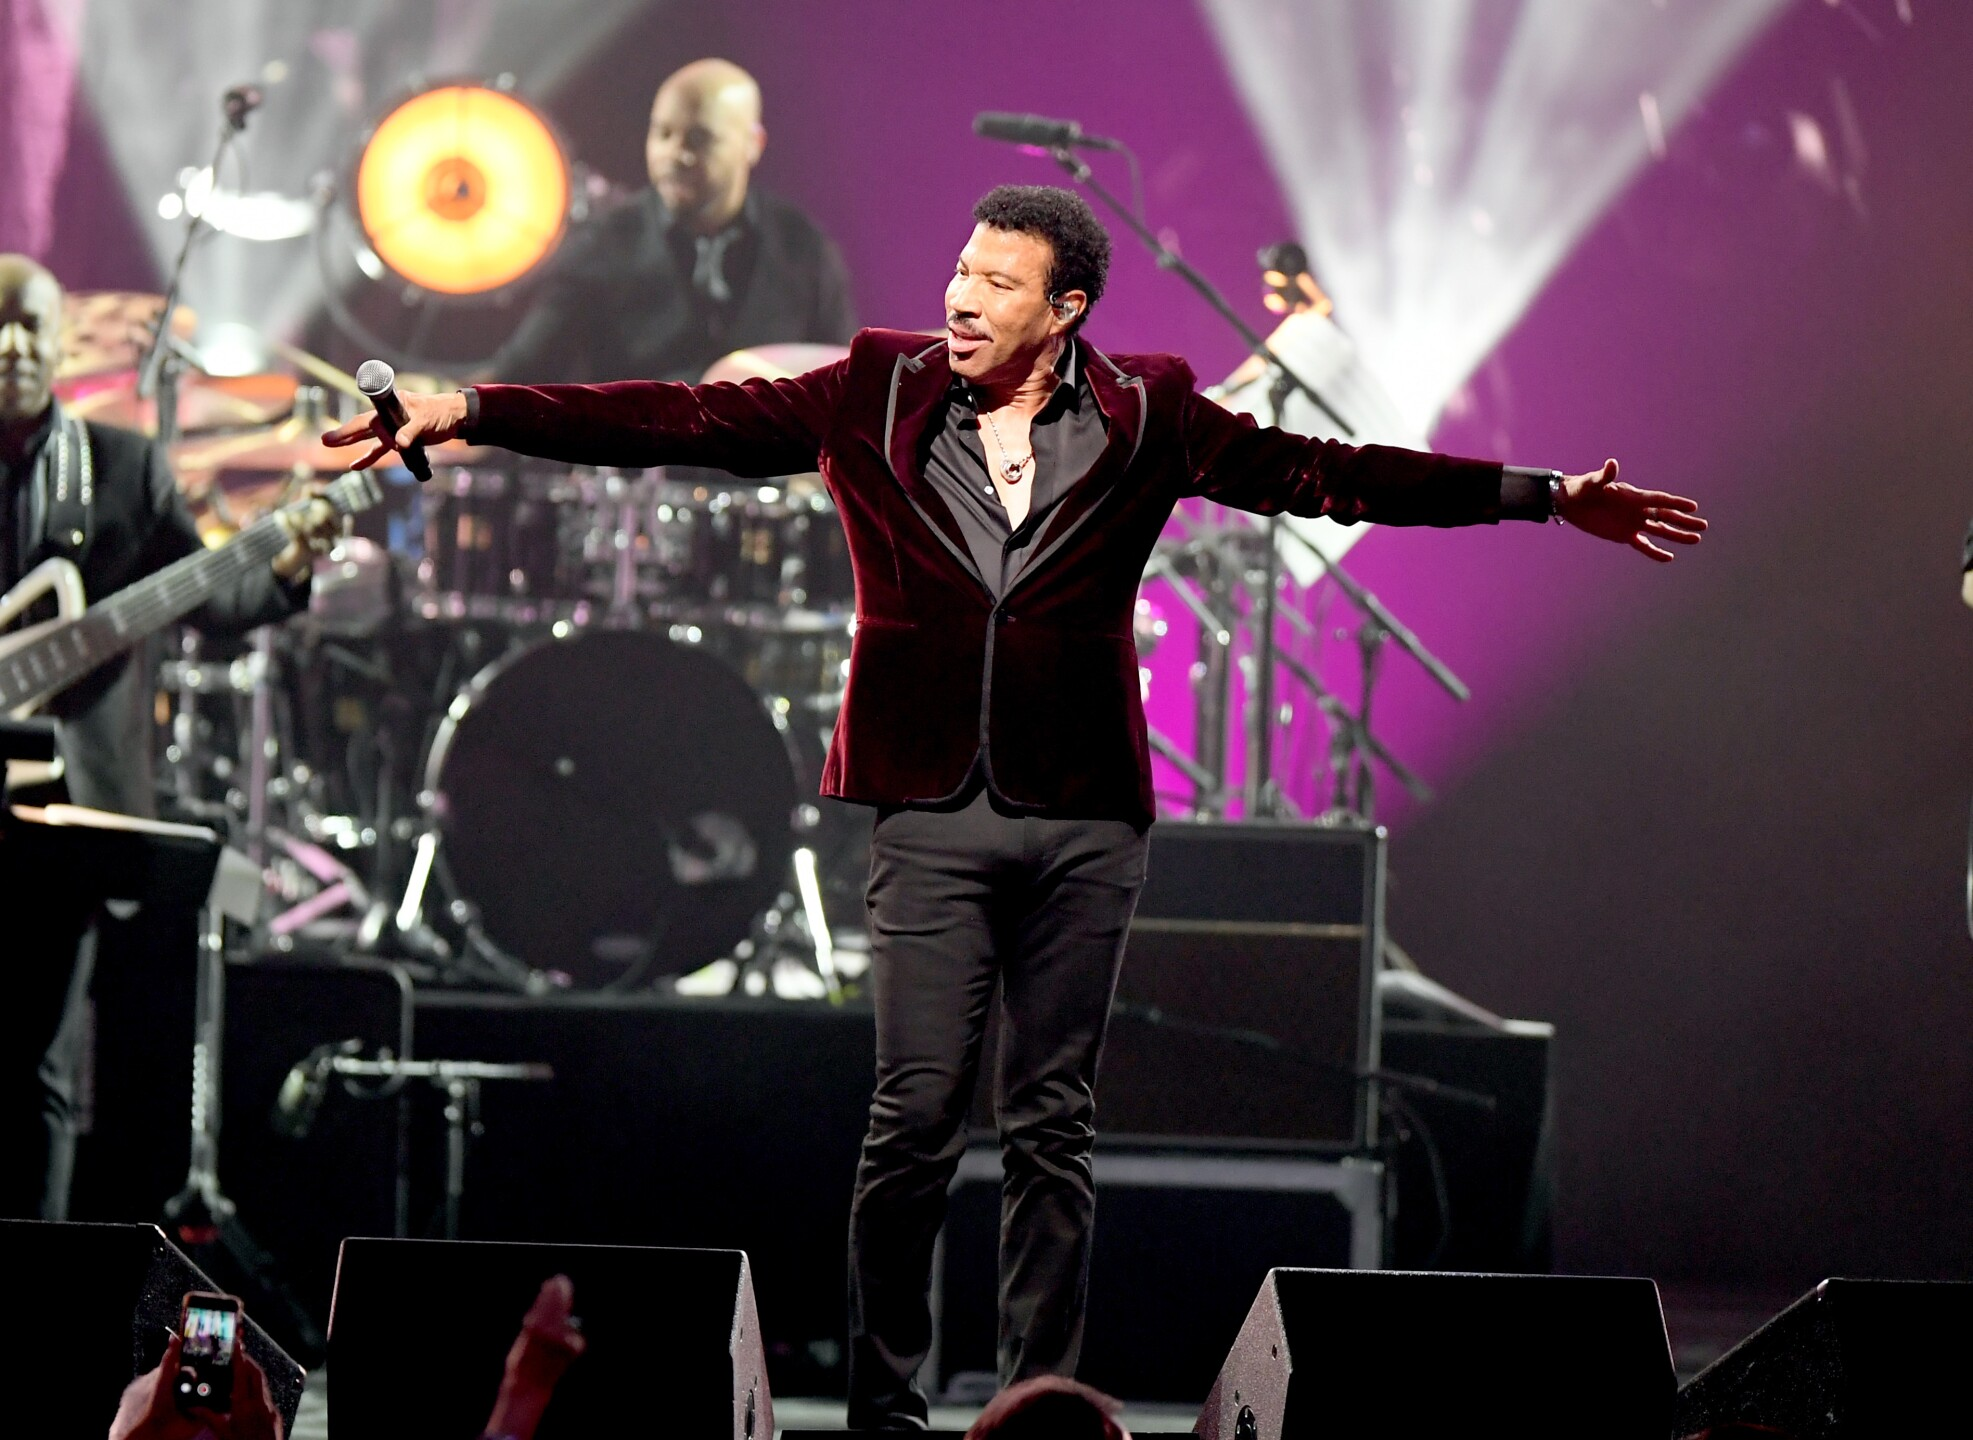 Lionel Richie to perform July 2 at Summerfest